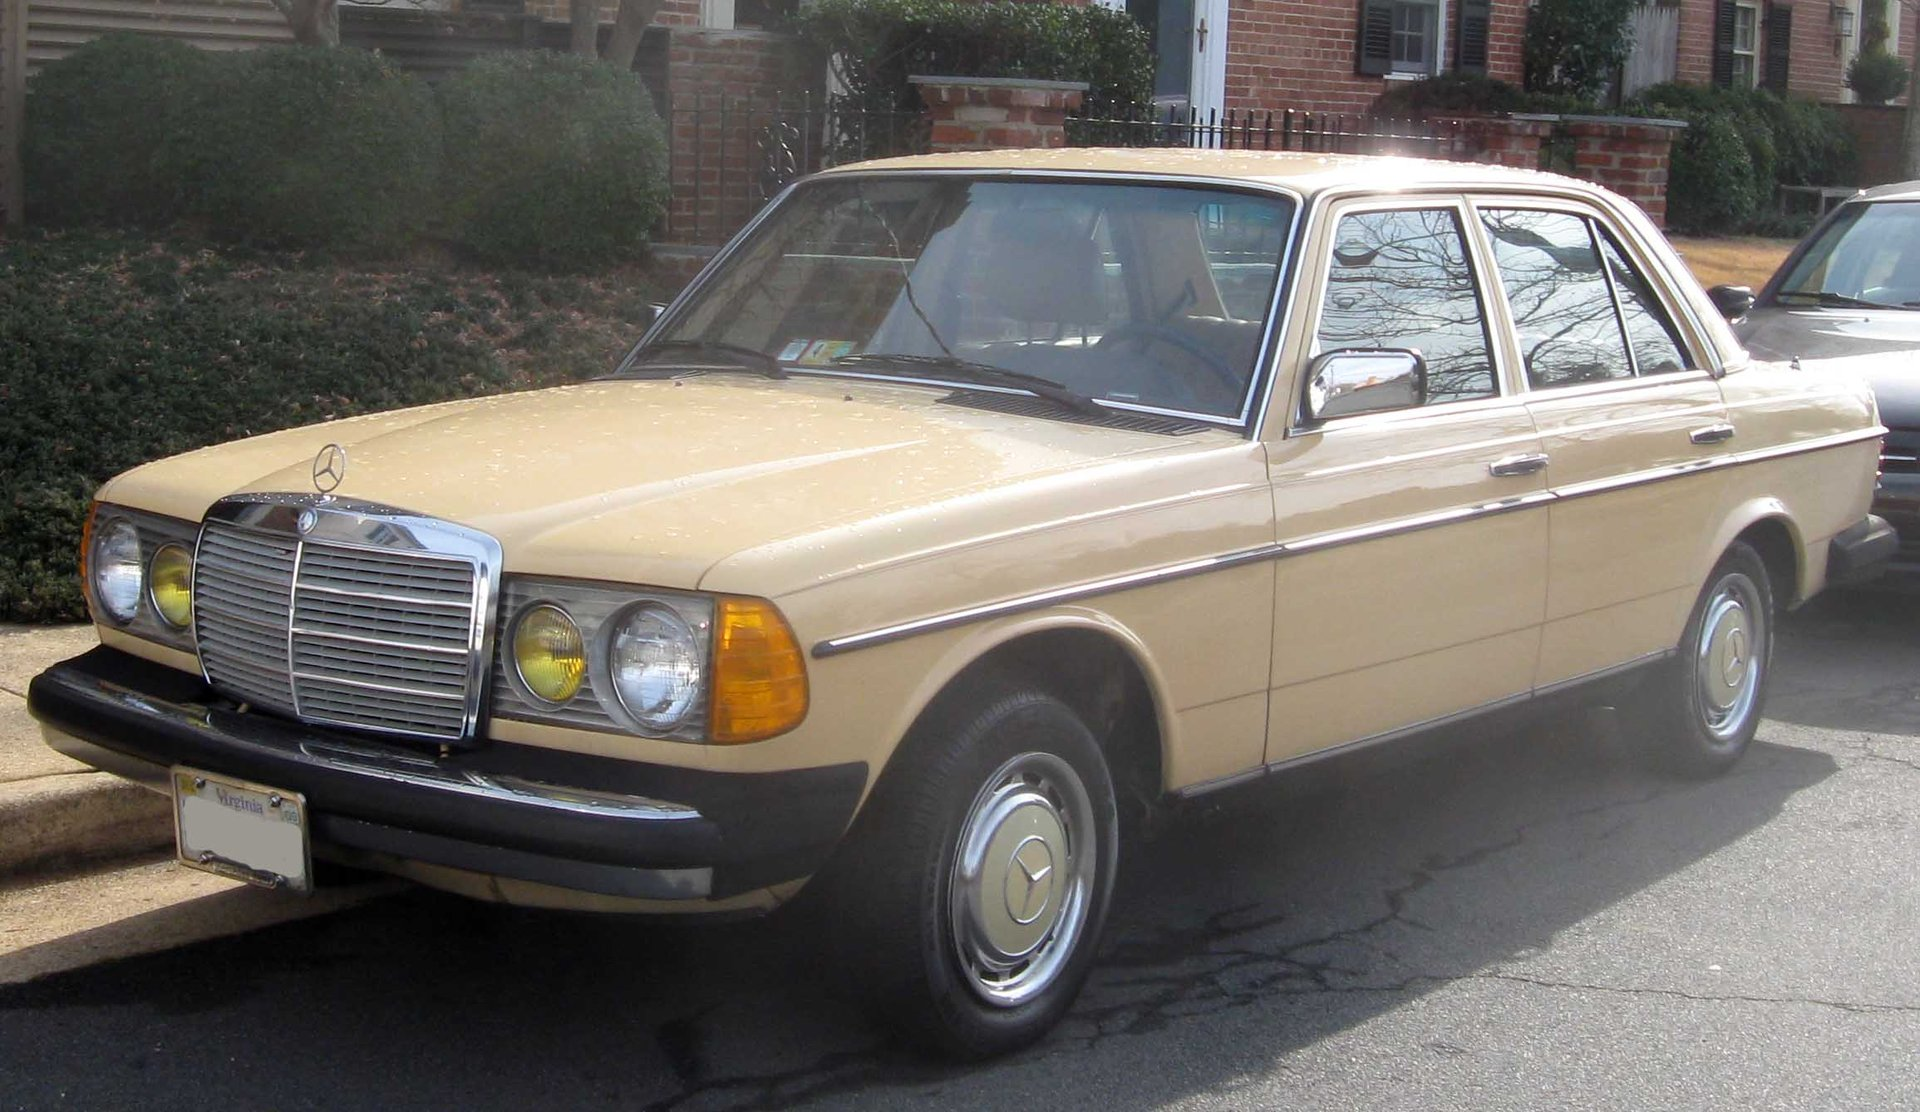 w115 VS w123 240D engine difference?? | Mercedes-Benz Forum